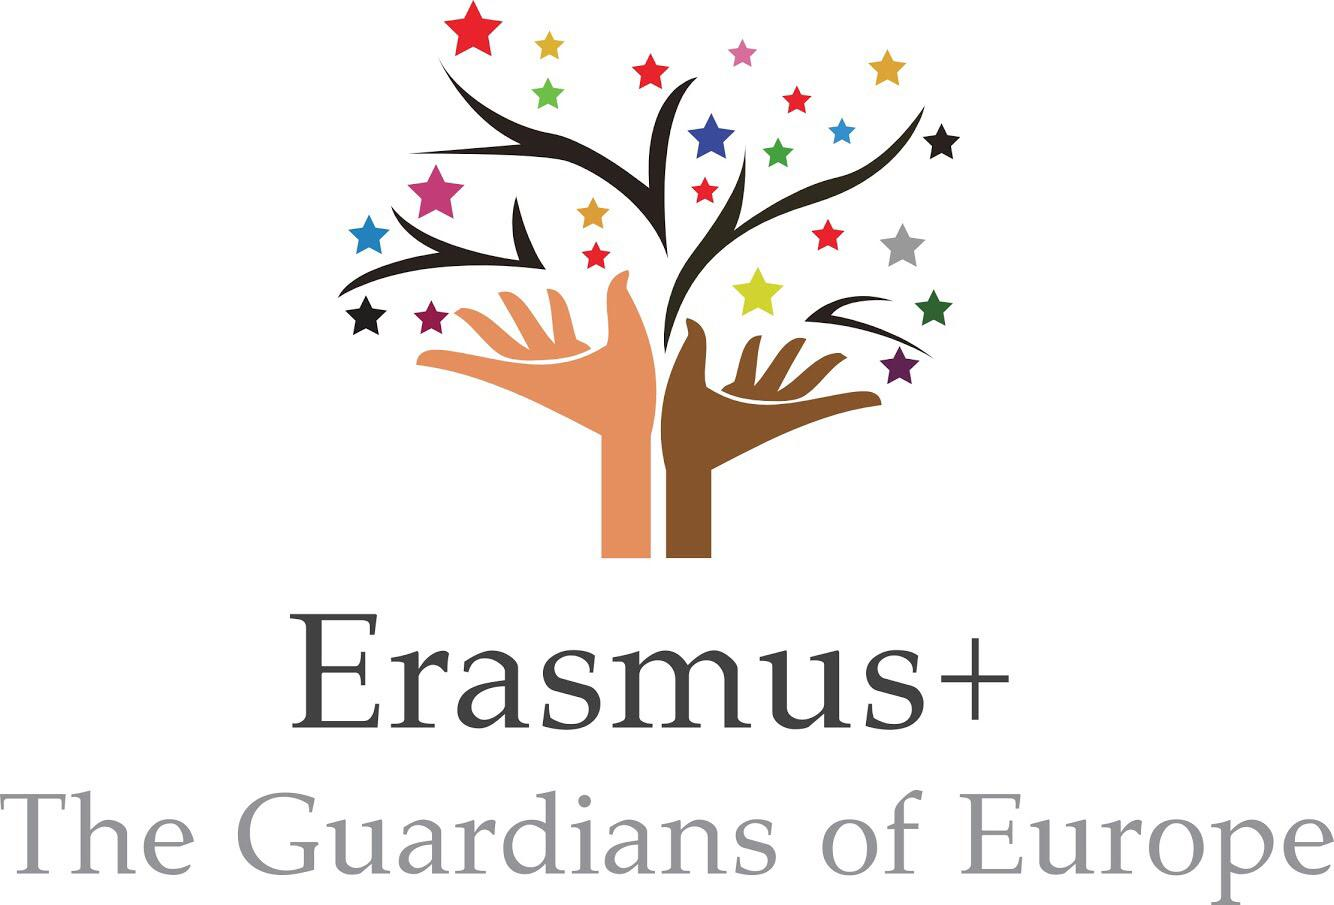 Erasmus+ - The Guardians of Europe